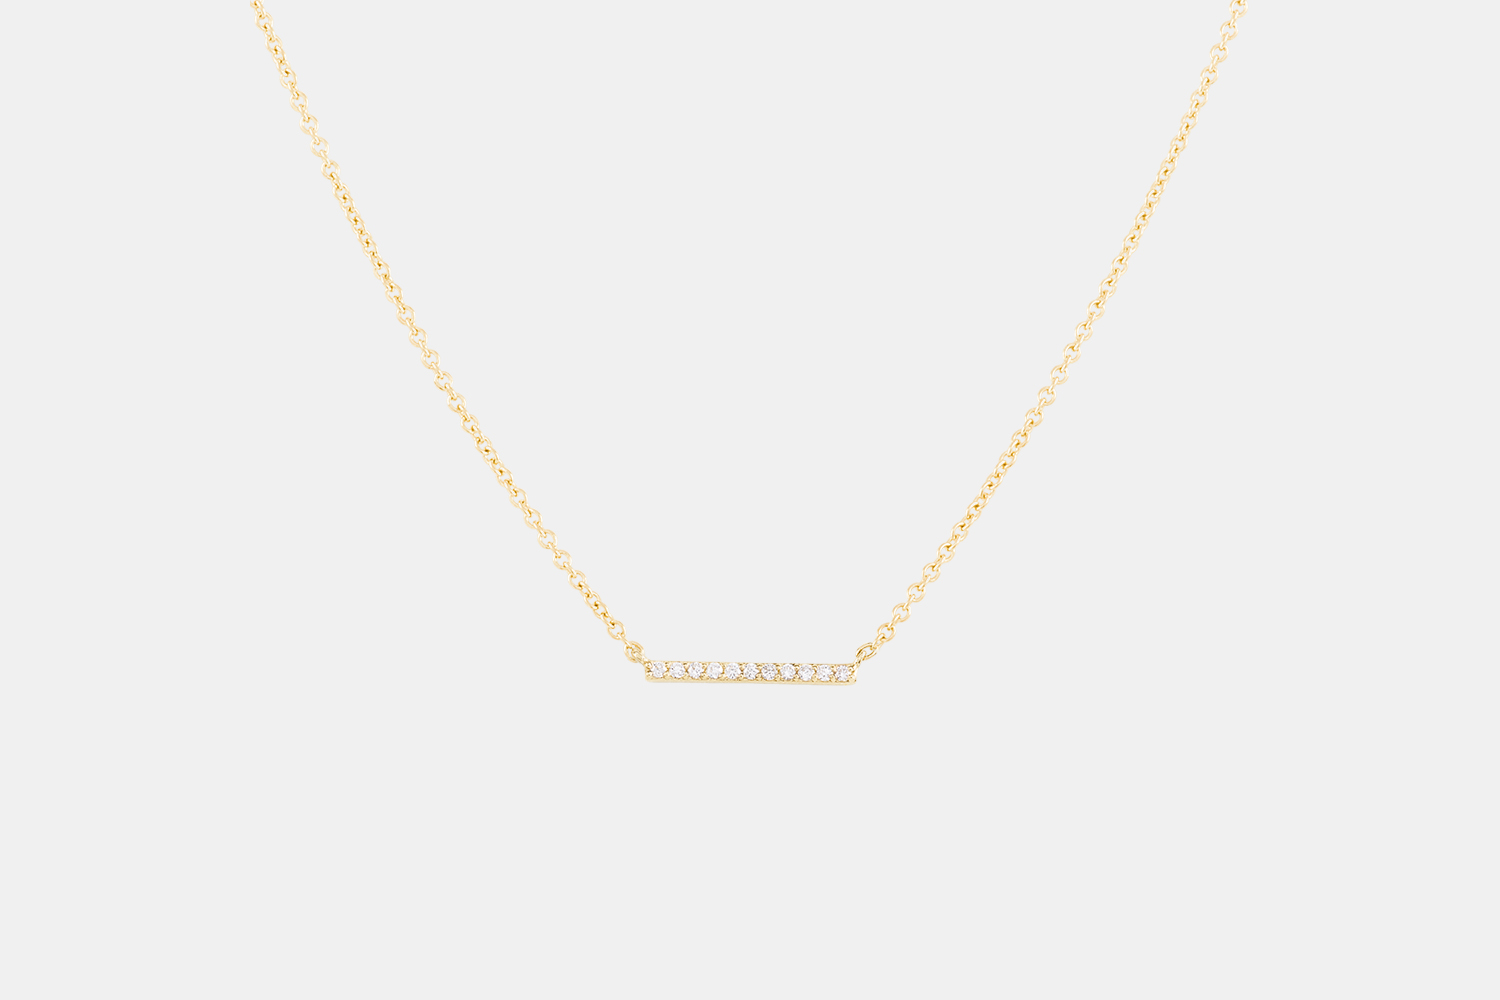 This 'Diamonds Line' necklace from Mejuri is a no-brainer